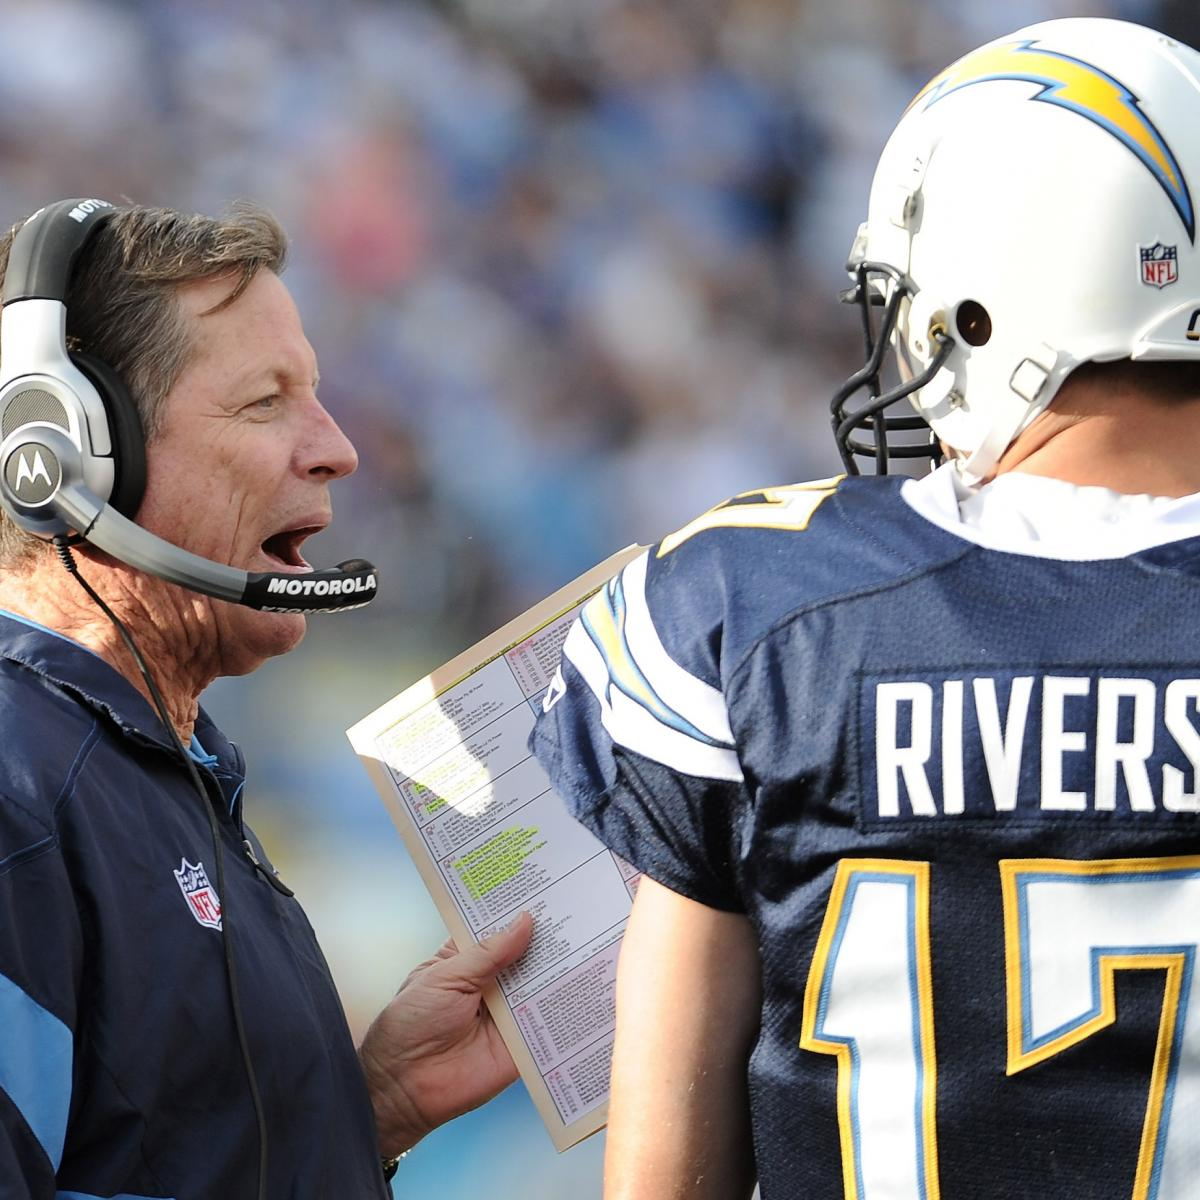 San Diego Chargers Fan: San Diego Chargers And Padres: 3 Reasons Why They Have The